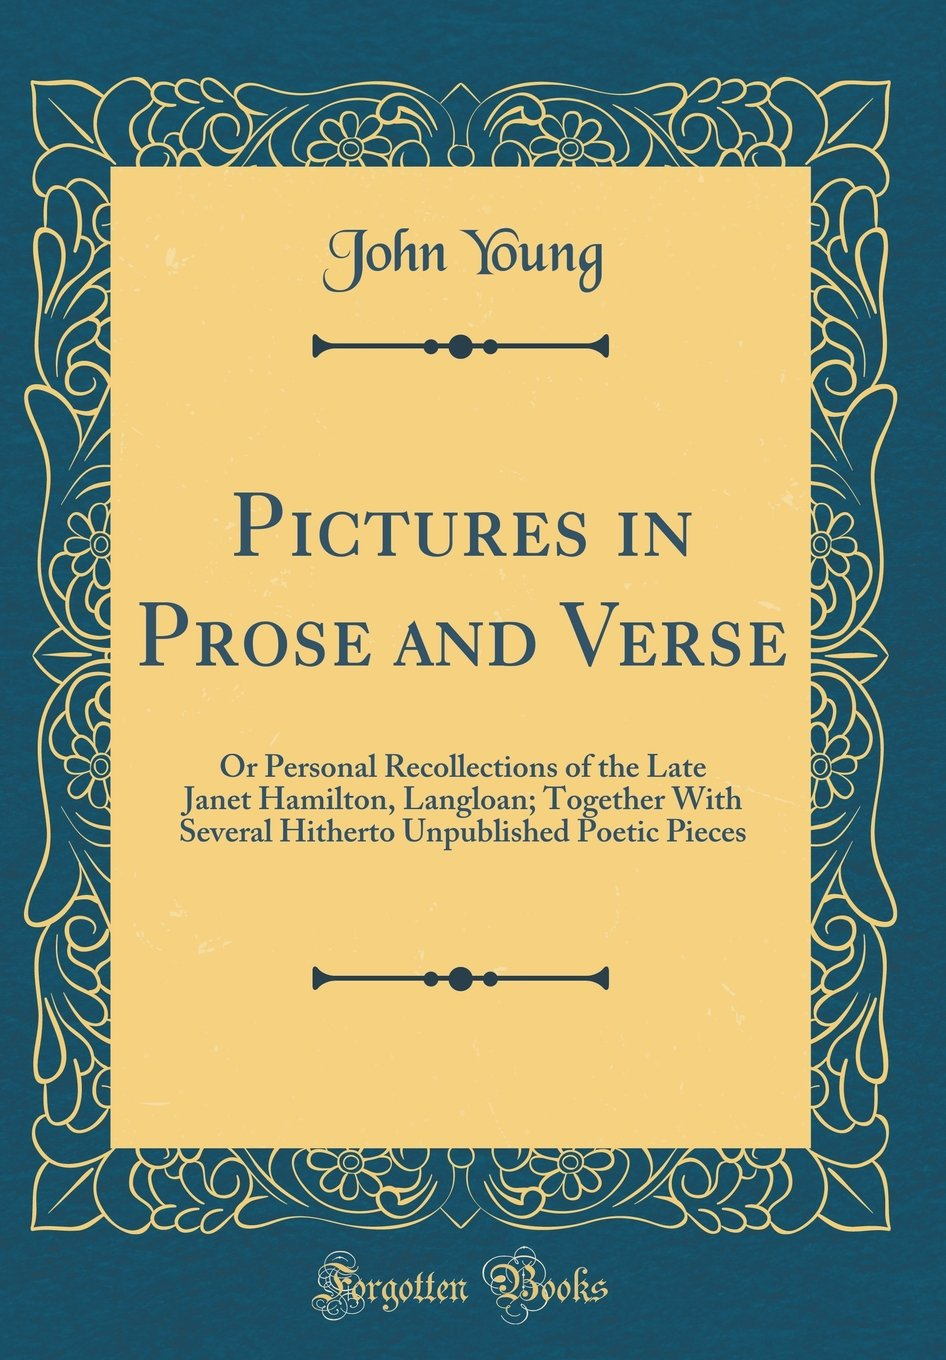 Read Online Pictures in Prose and Verse: Or Personal Recollections of the Late Janet Hamilton, Langloan; Together With Several Hitherto Unpublished Poetic Pieces (Classic Reprint) pdf